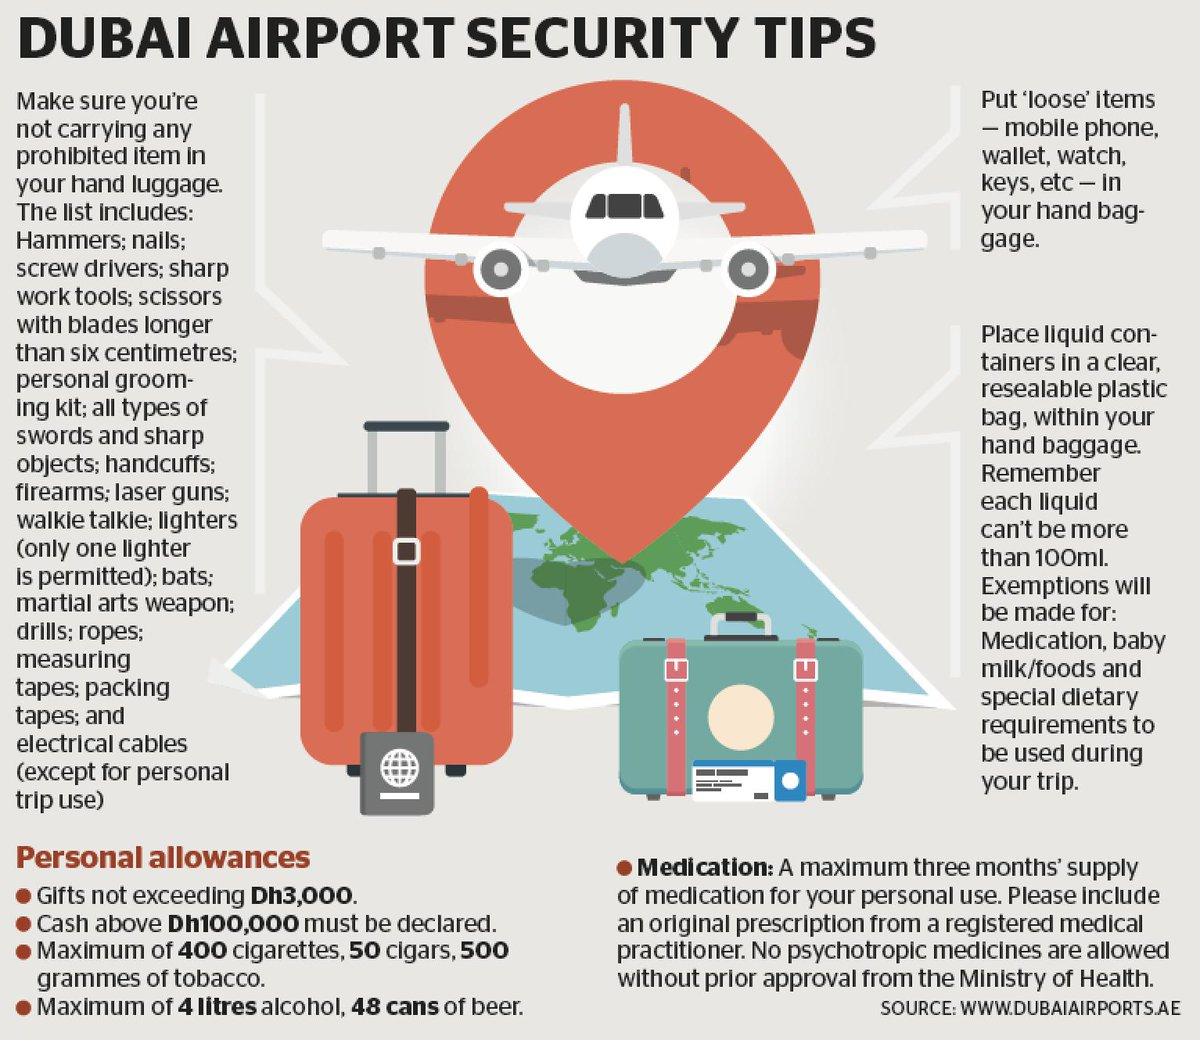 Bon voyage: Things to check before leaving for @DubaiAirports  https://bit.ly/2XKJLh4